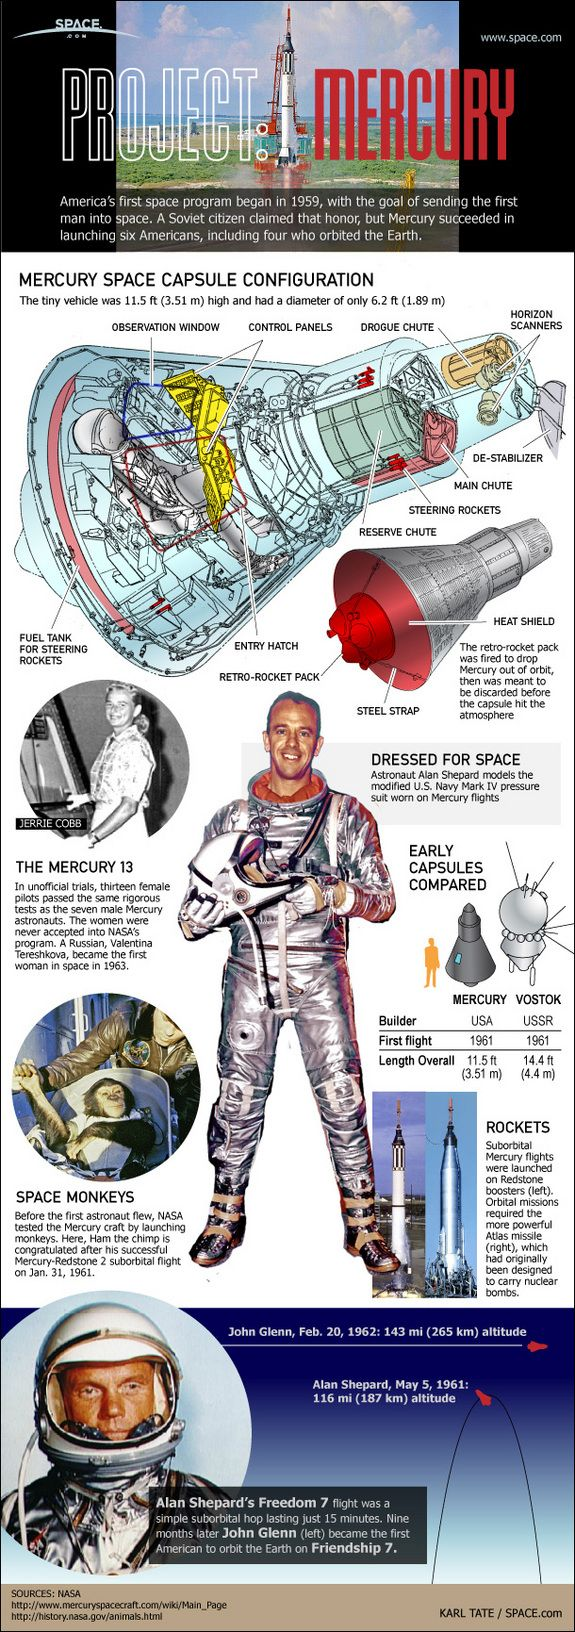 Take a look at how the first American astronauts flew in space on NASA's Mercury space capsules in this SPACE.com infographic.